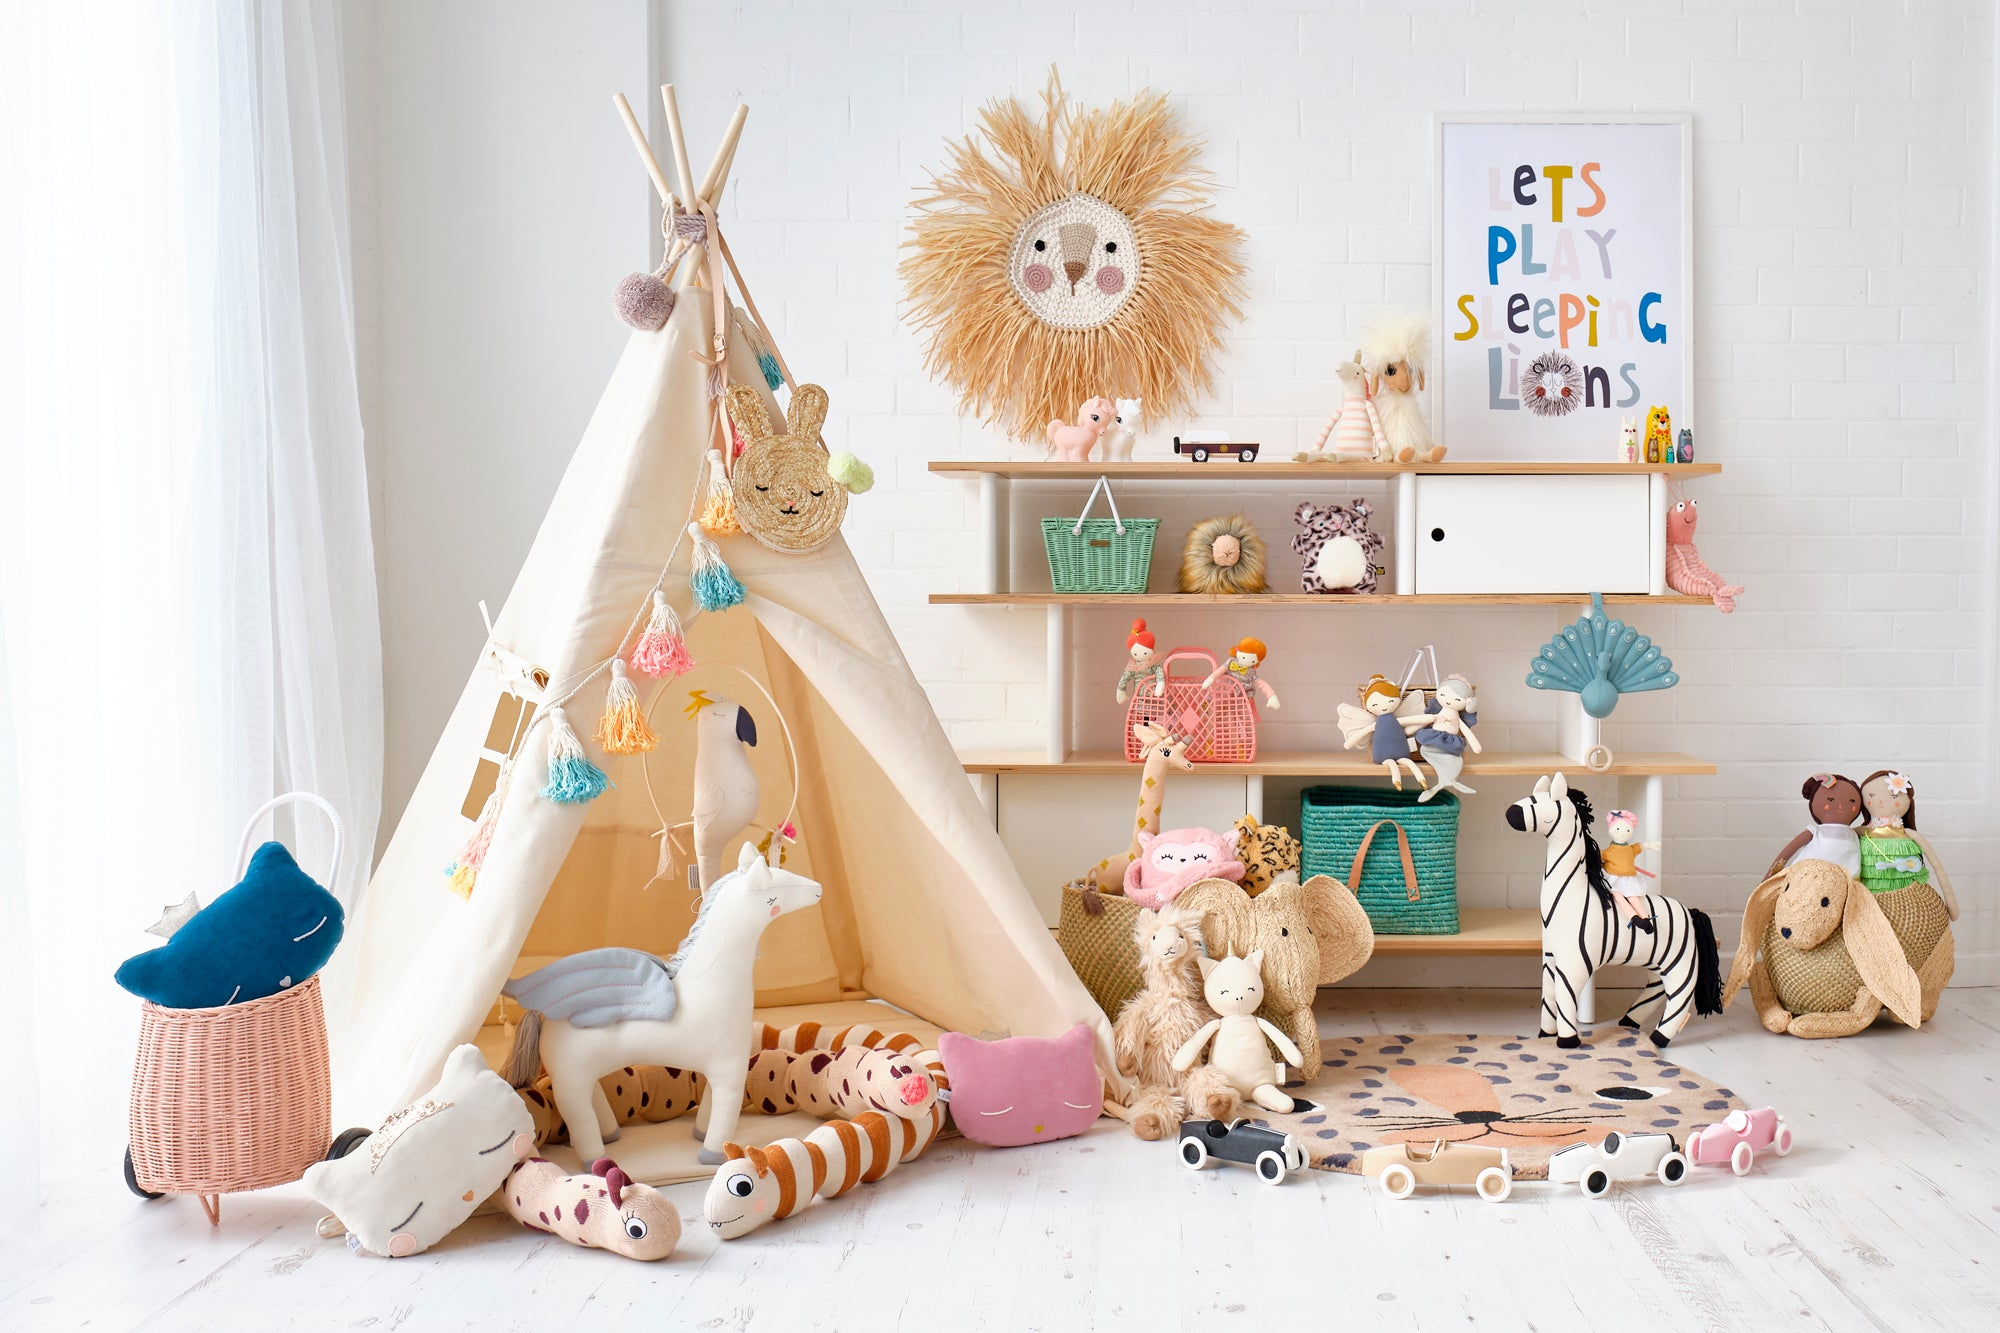 'Savannah!' Children's Playroom, created and styled by Bobby Rabbit.